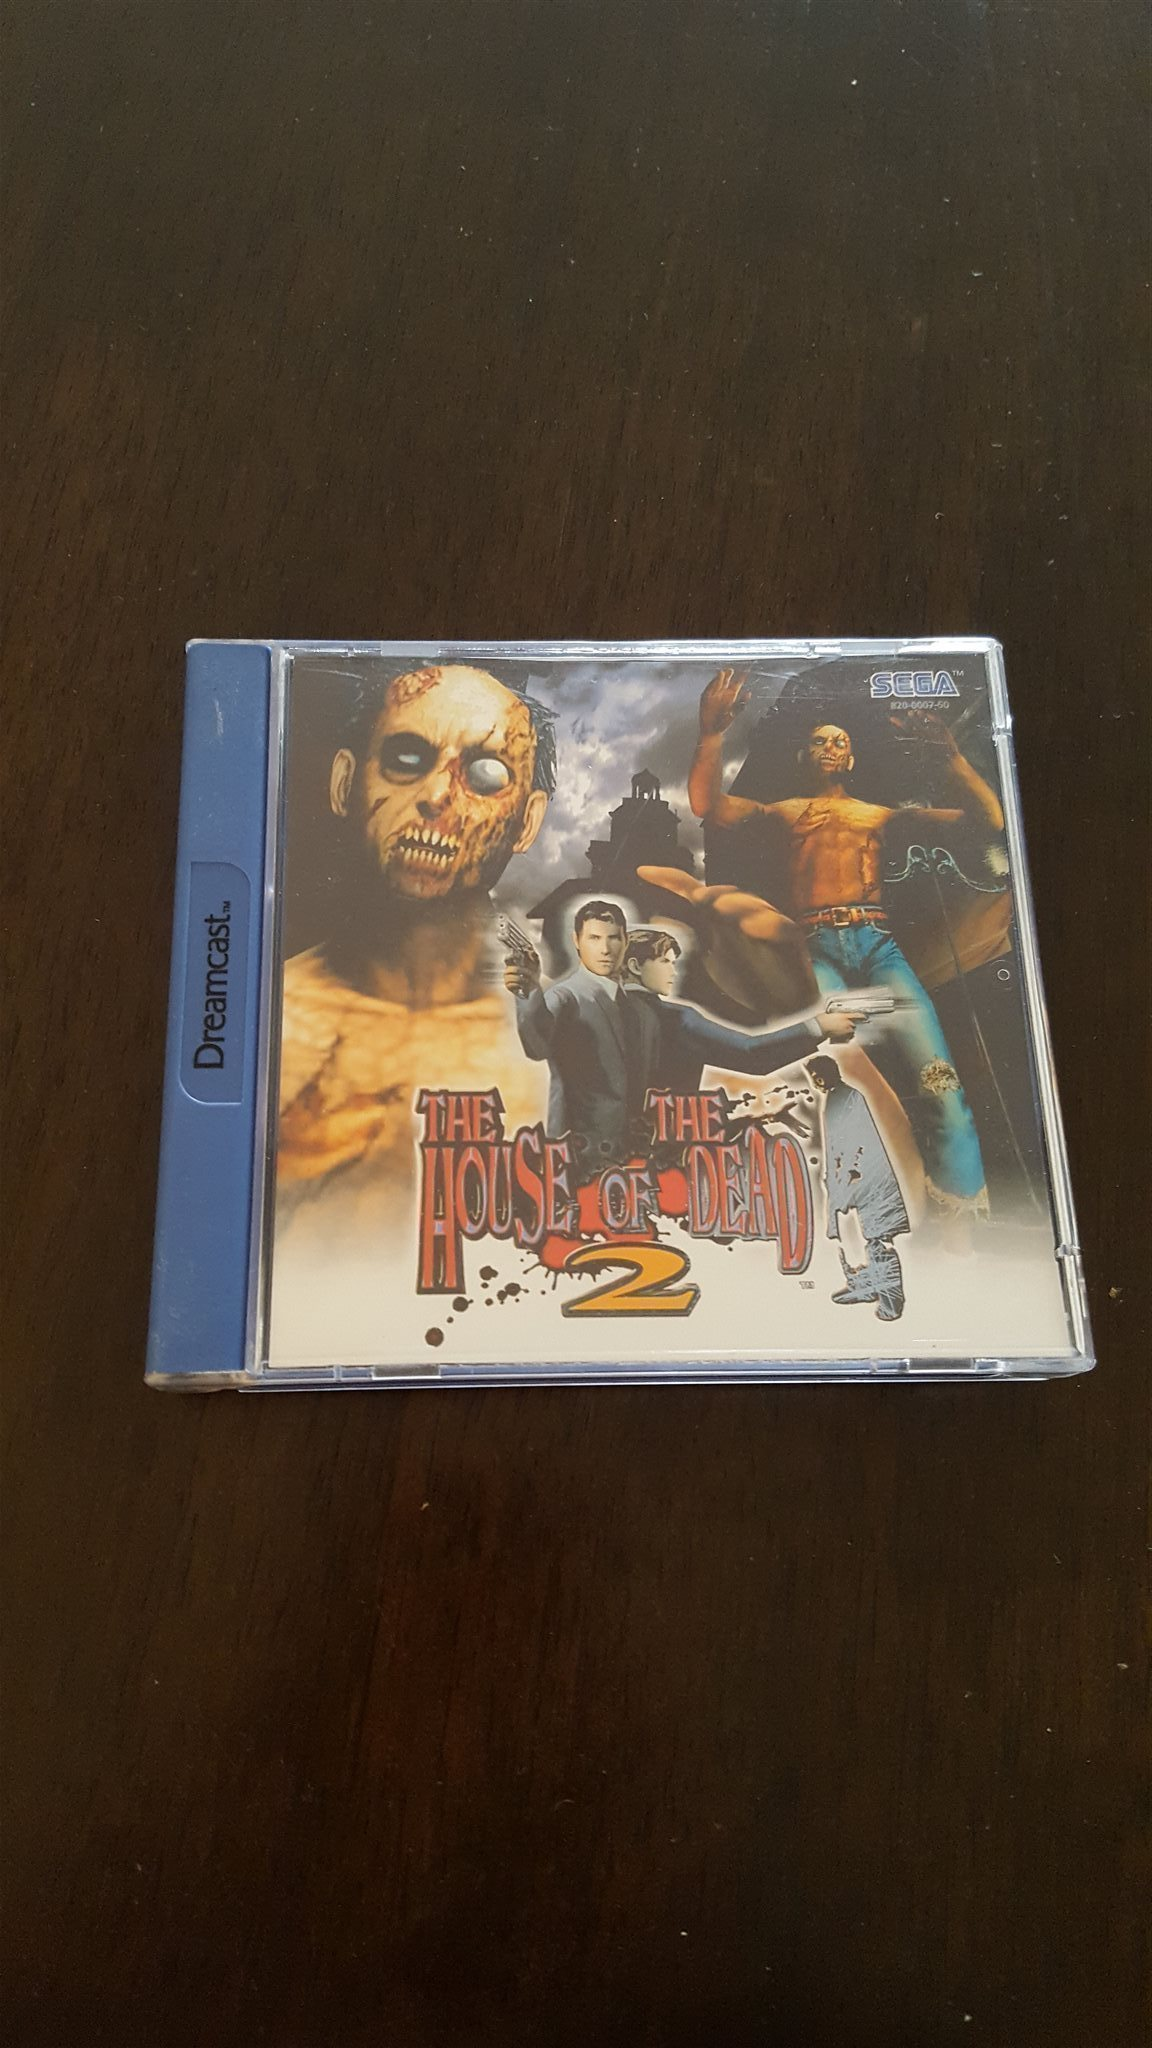 The house of the dead 2 till Sega Dreamcast.